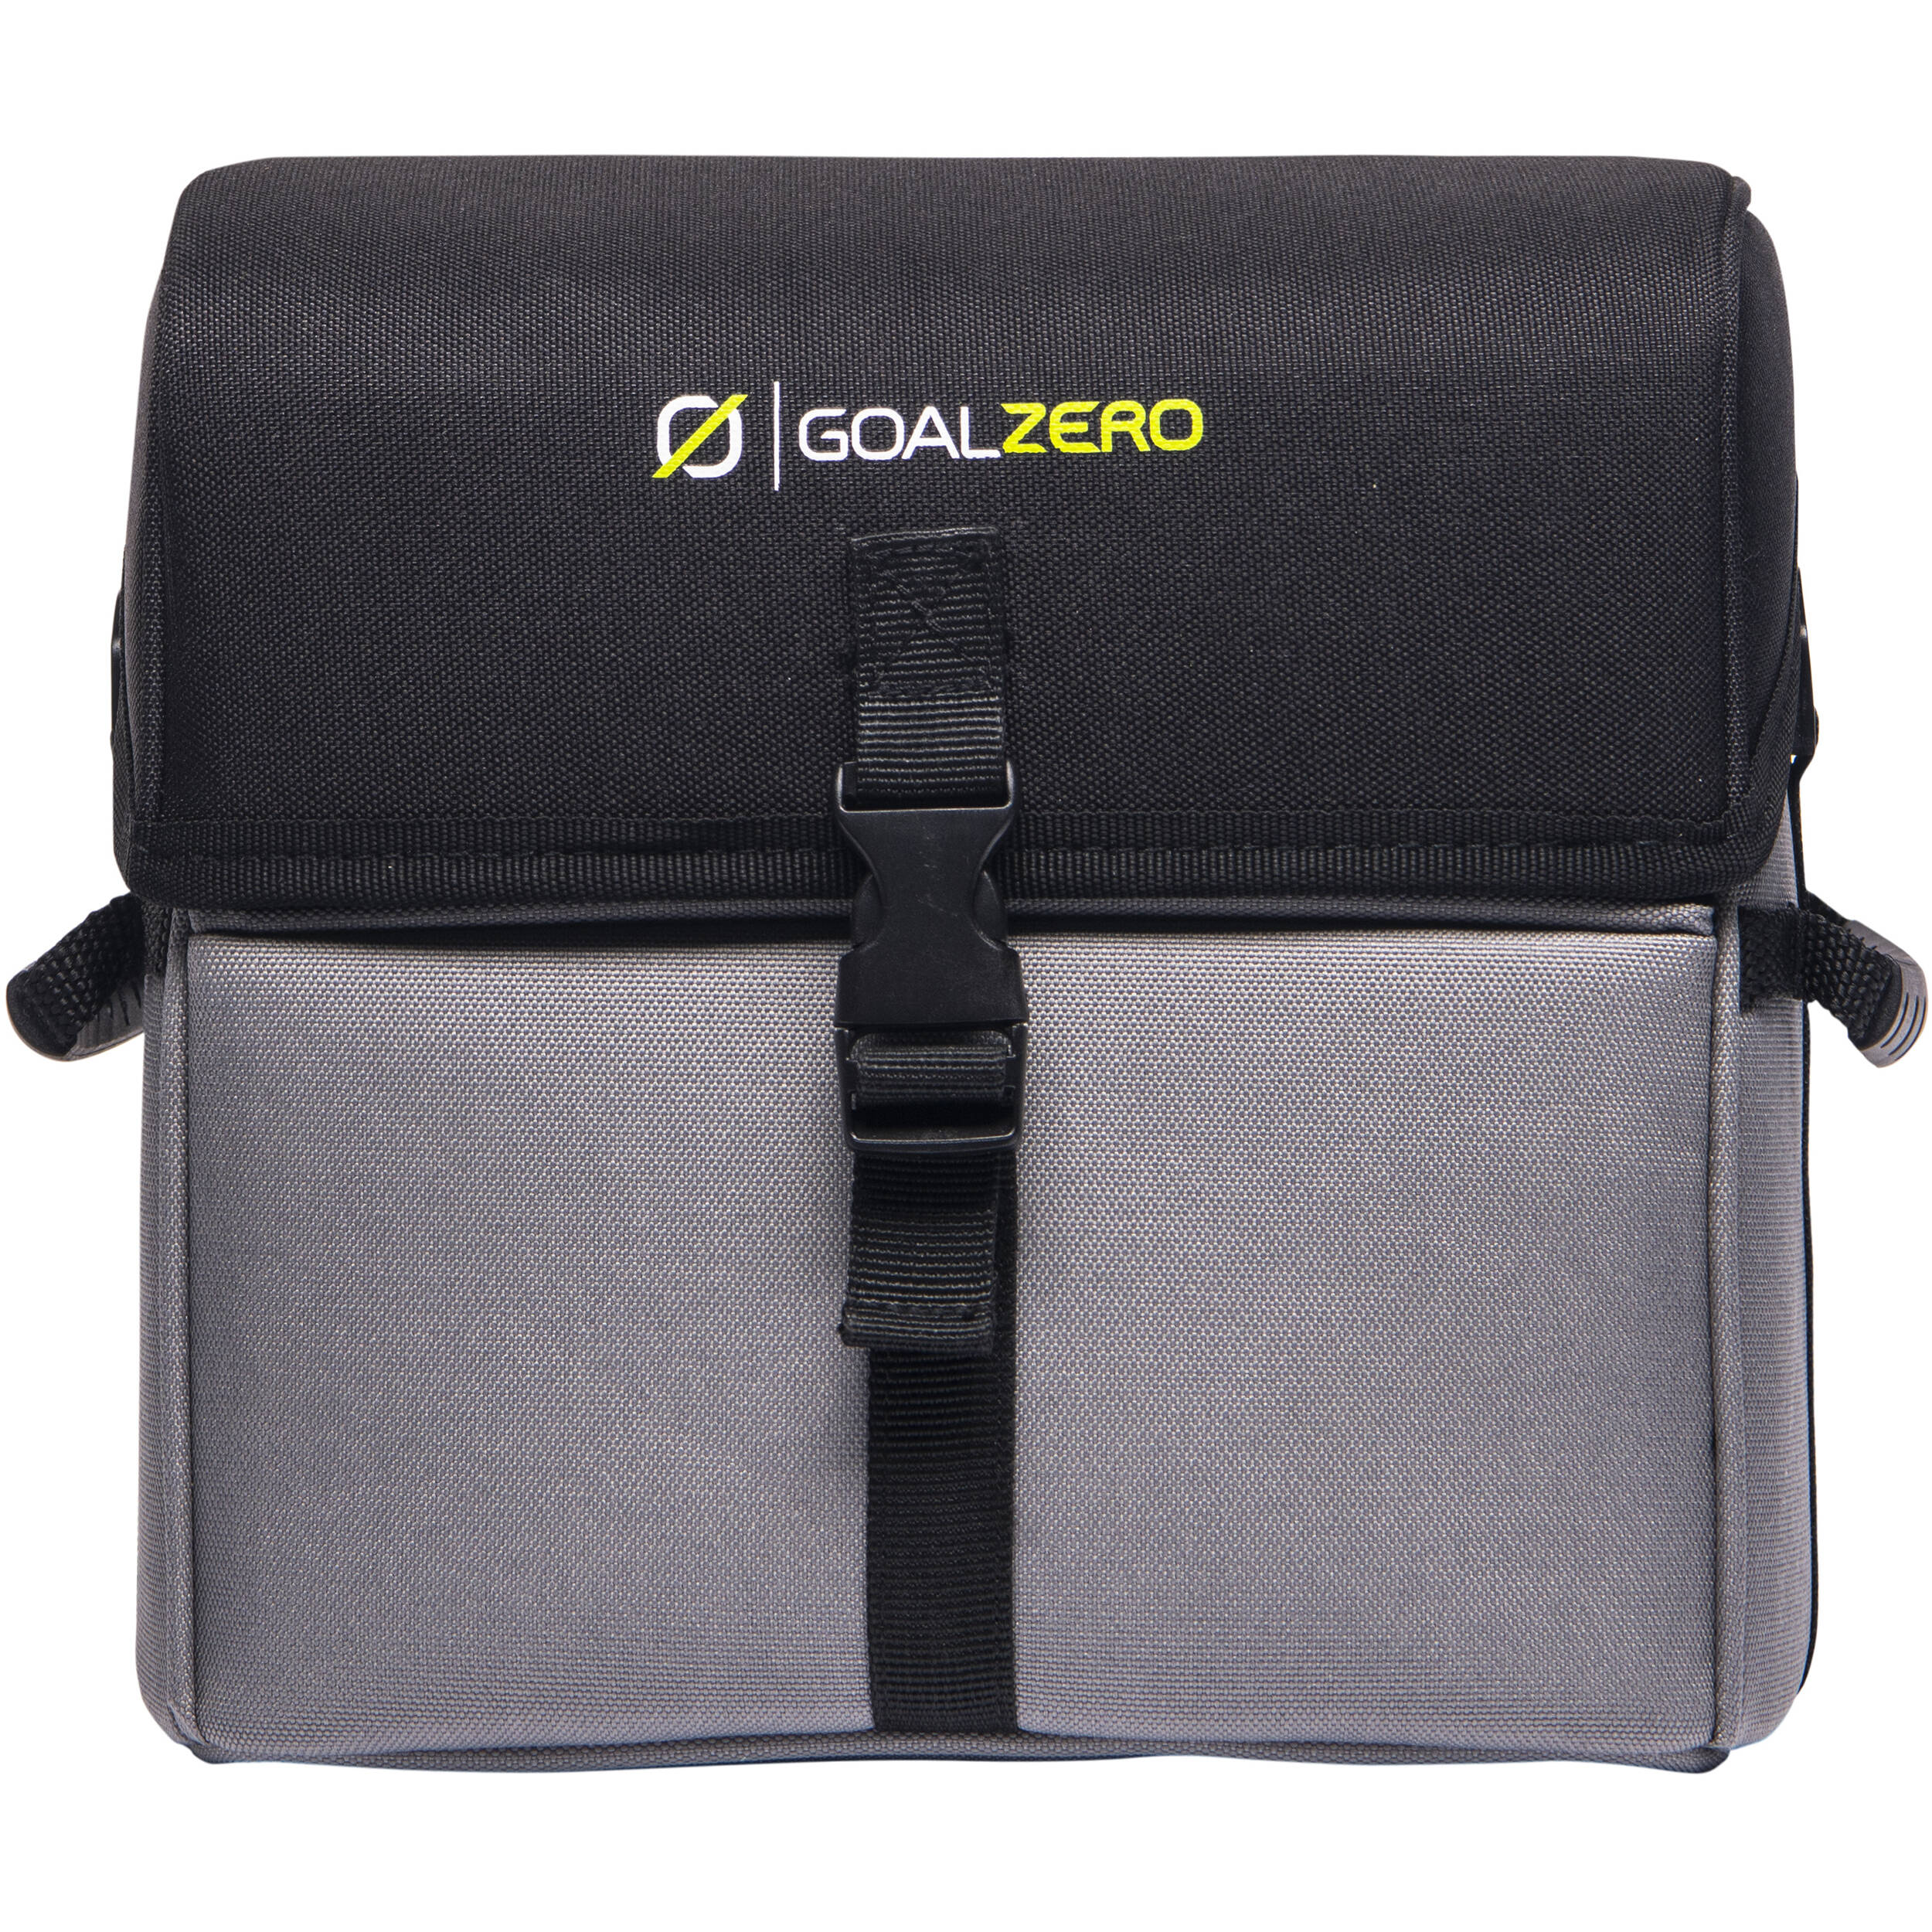 GOAL ZERO Nylon Case for Yeti 200X Lithium 92310 B&H Photo Video